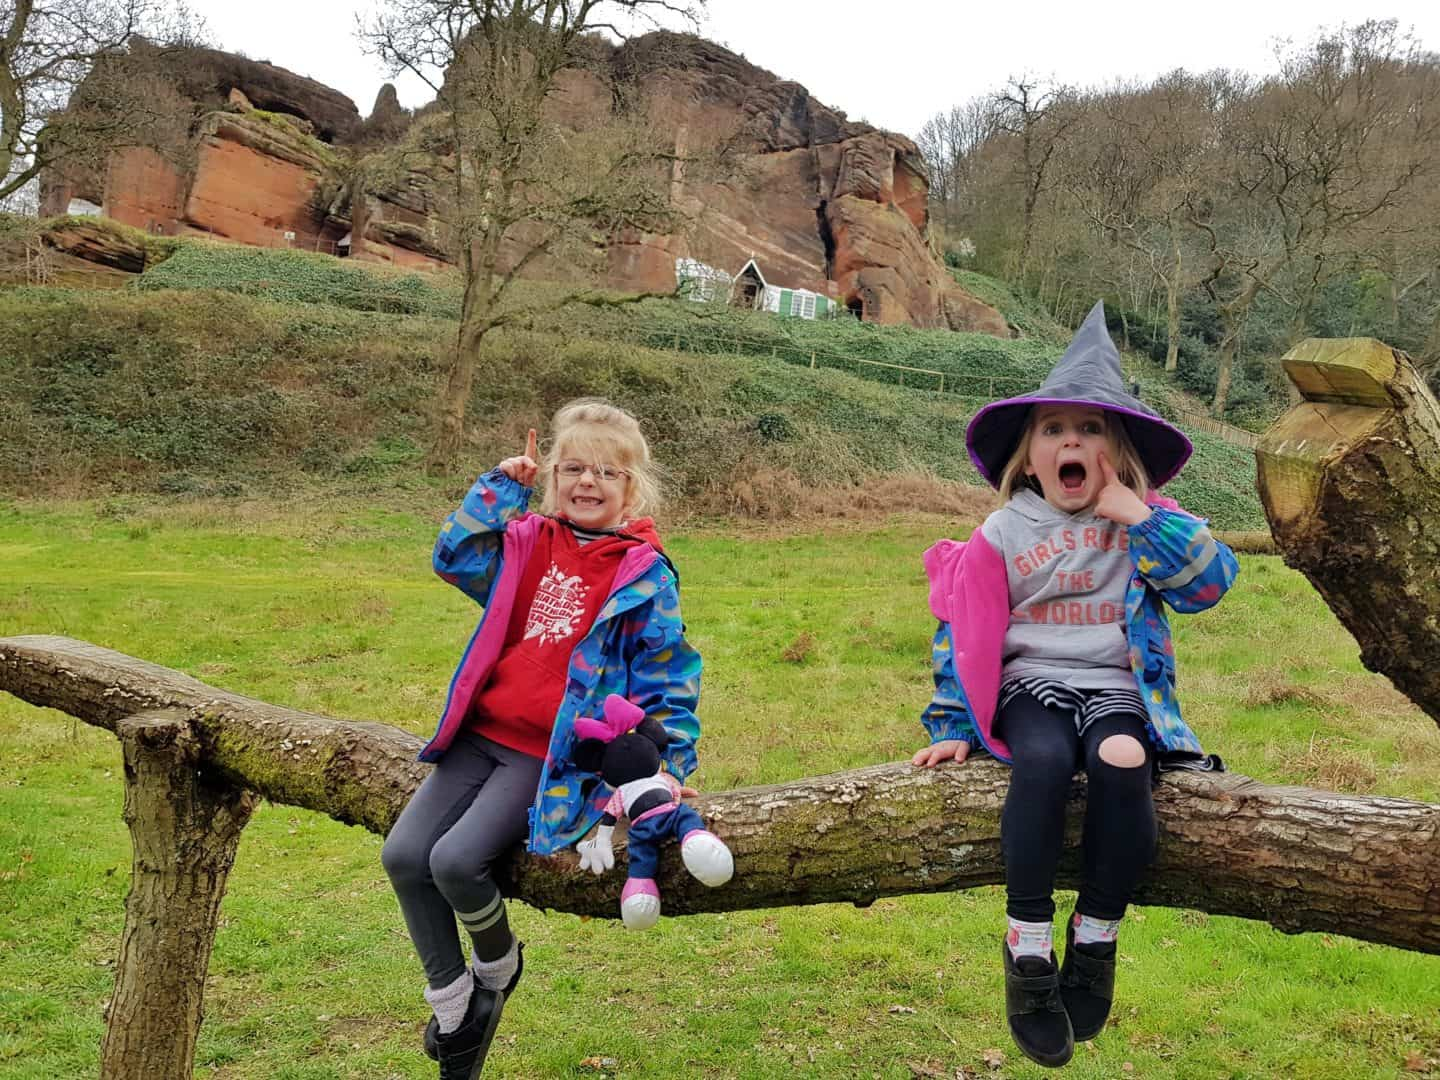 Kinver Edge and the Rock Houses National Trust West Midlands girls playing on log below rock houses